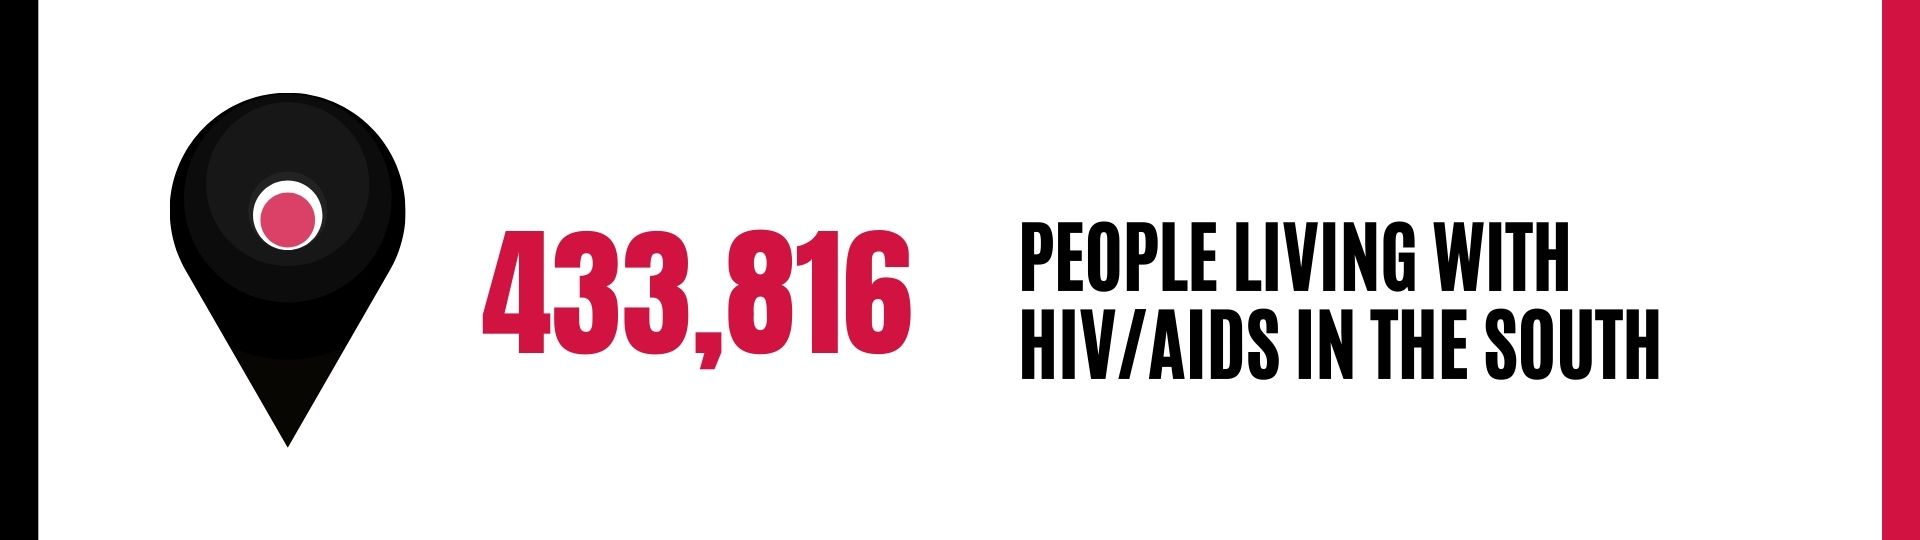 Over 400,000 with HIV in South